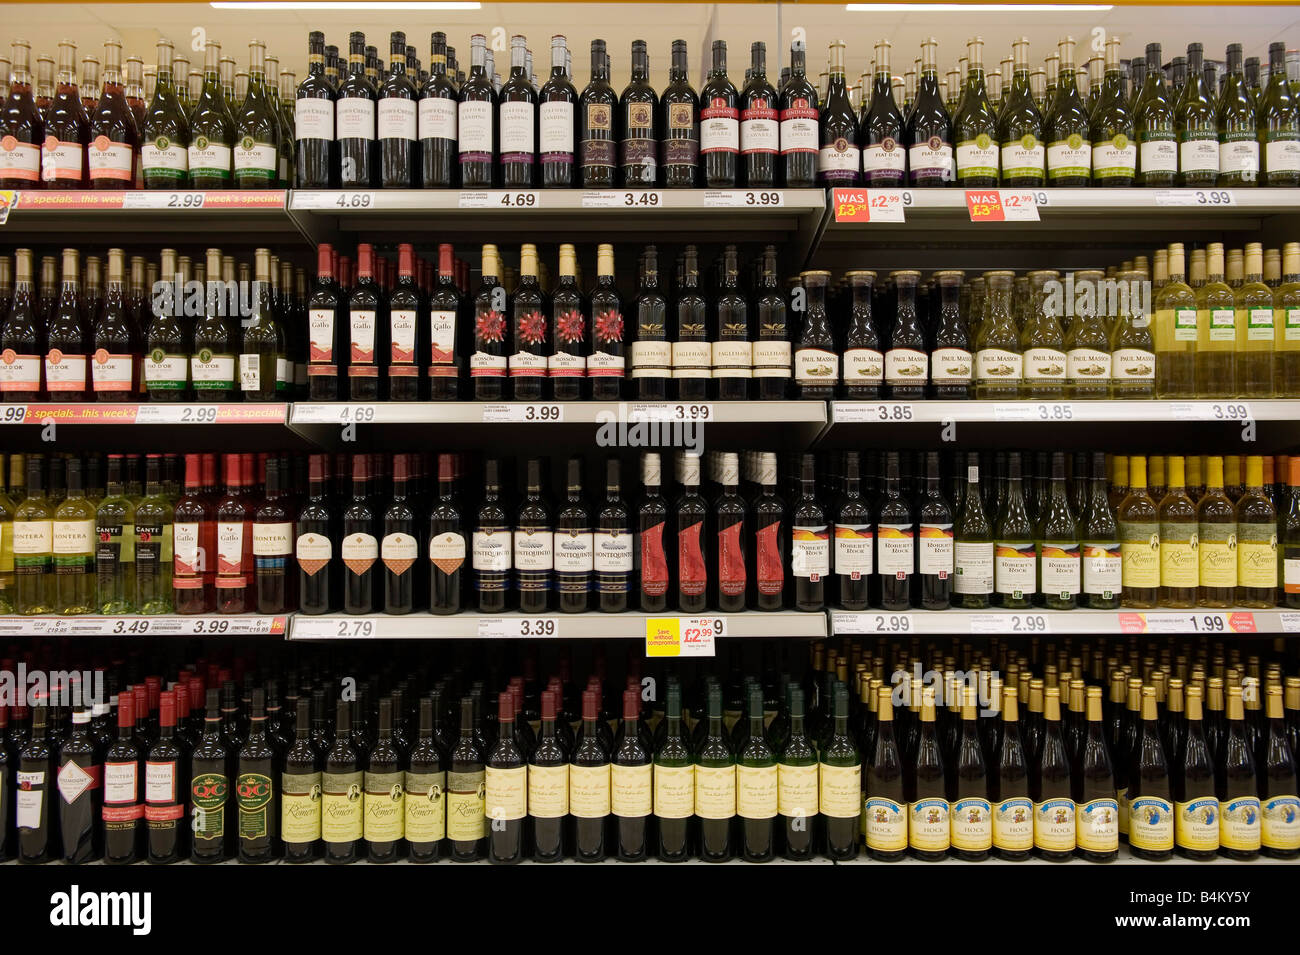 Bottles of cheap red wine on shelves in a budget supermarket in the UK - Stock Image